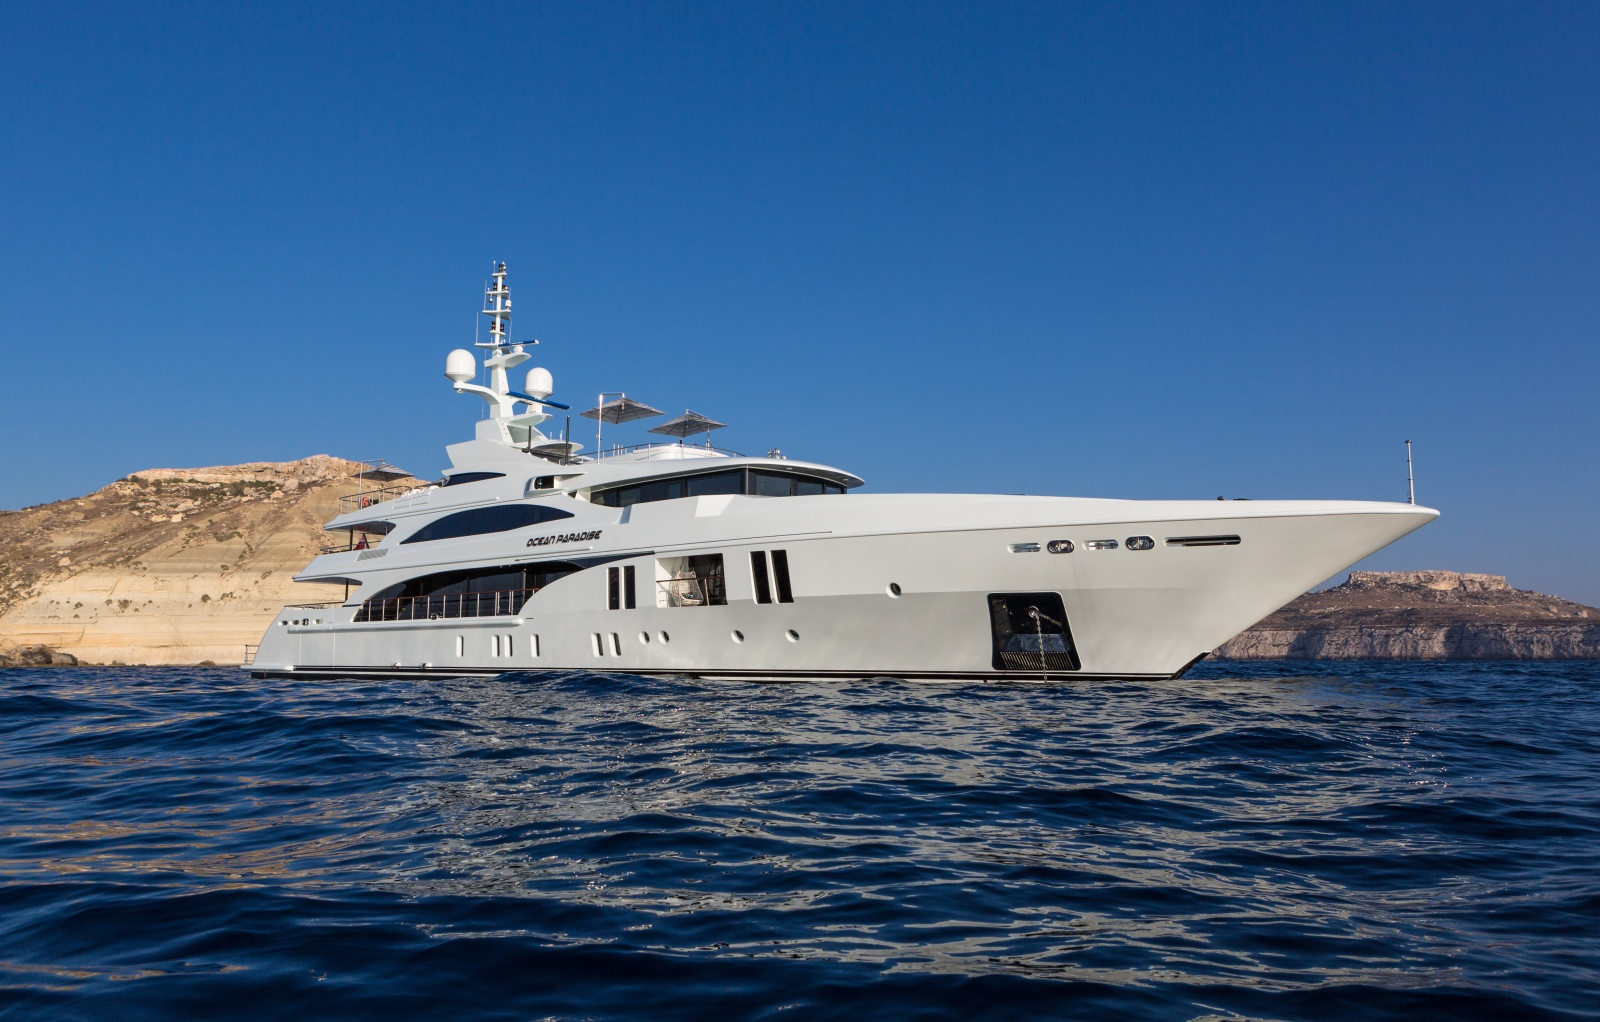 Take A Look Inside The Largest Boat At The Cannes Yachting Festival